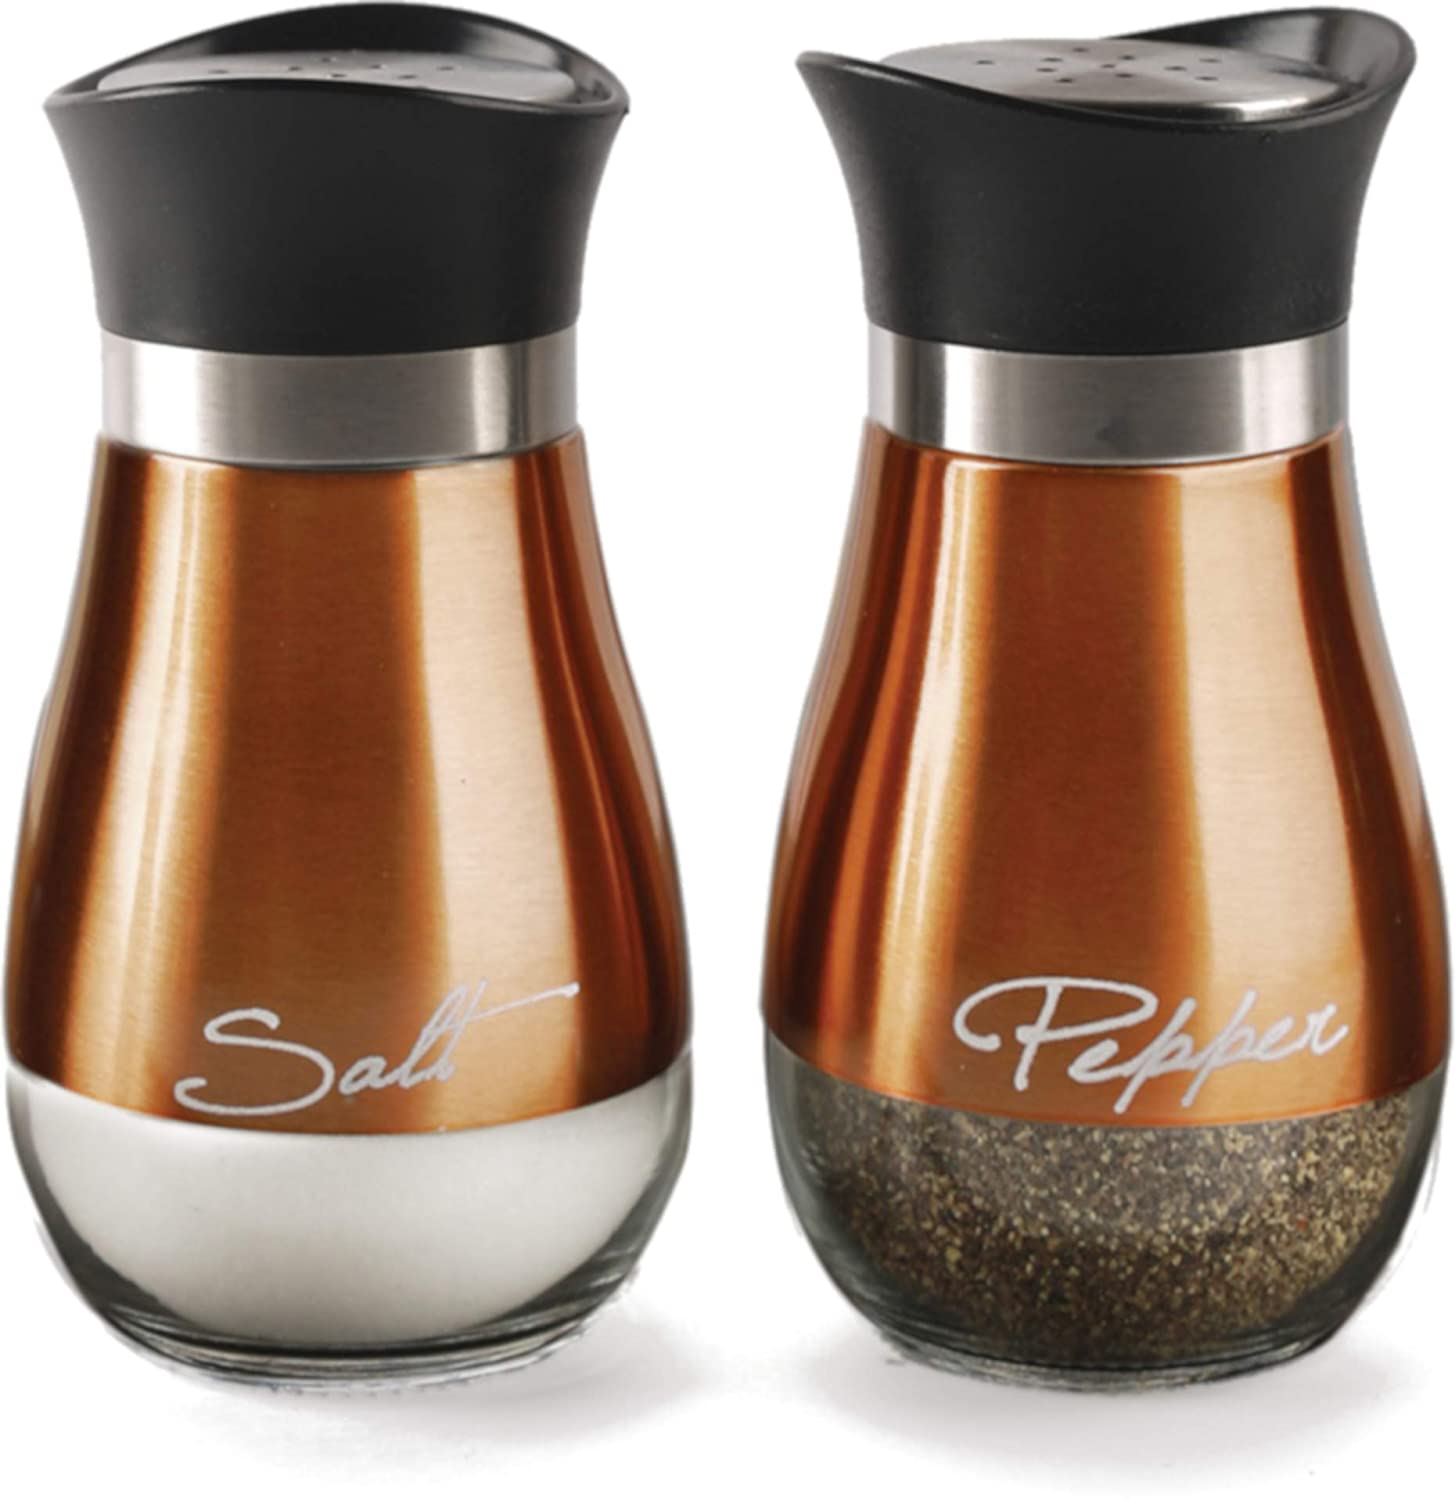 Circleware 68252 Cafe Contempo Elegant Glass Salt and Pepper Shakers Dispenser, Clear Bottom Jar Bottle Container with Stainless Steel Top, Perfect for Himalayan Seasoning Herbs Spices, 4.4 oz, Copper